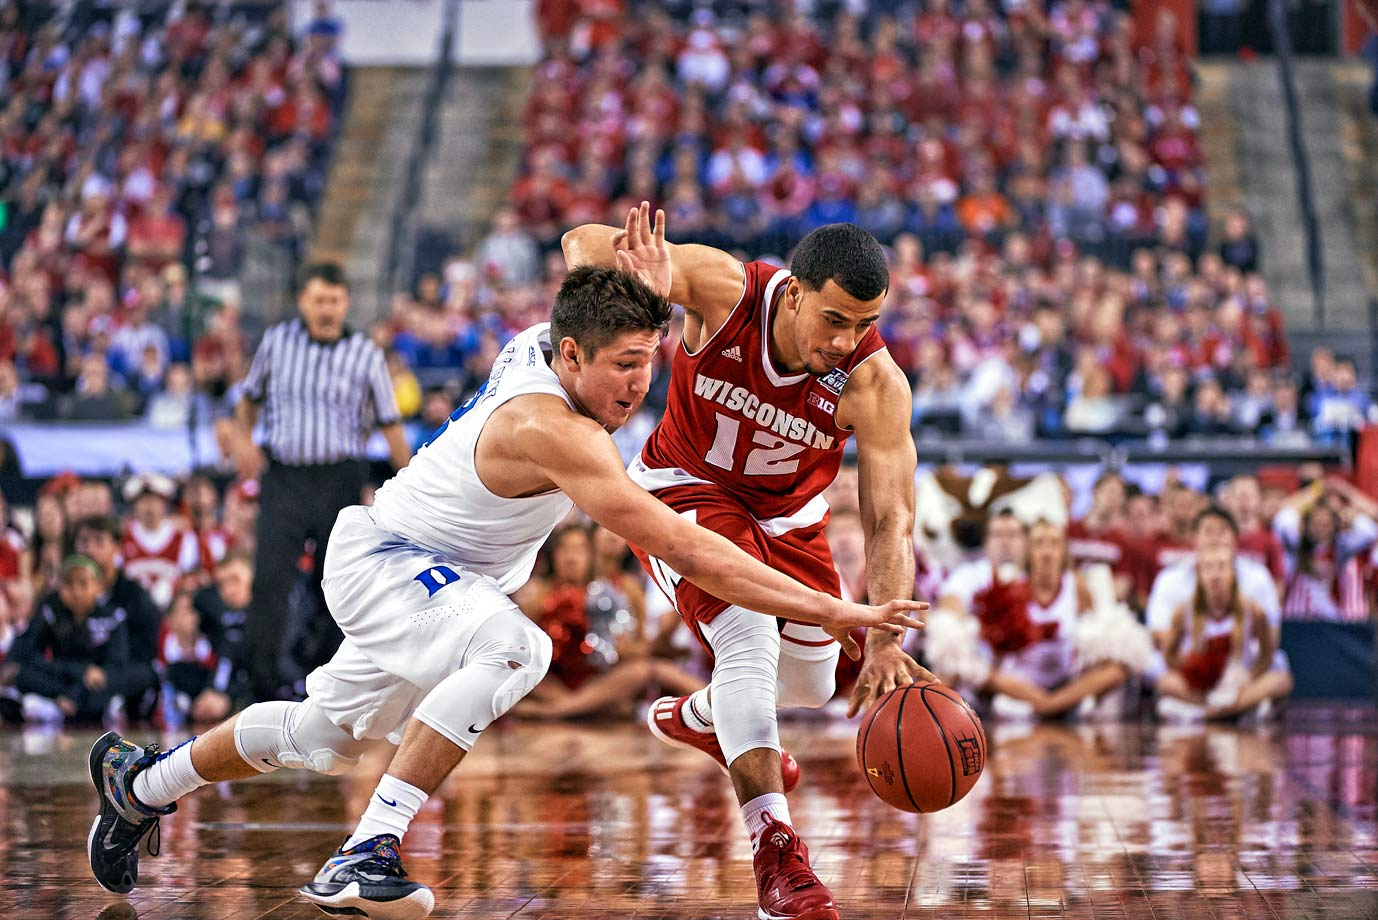 Guards Traevon Jackson and Grayson Allen race for a loose ball. Allen had the better day of the back-up guards, scoring 16 points on 5-8 shooting.